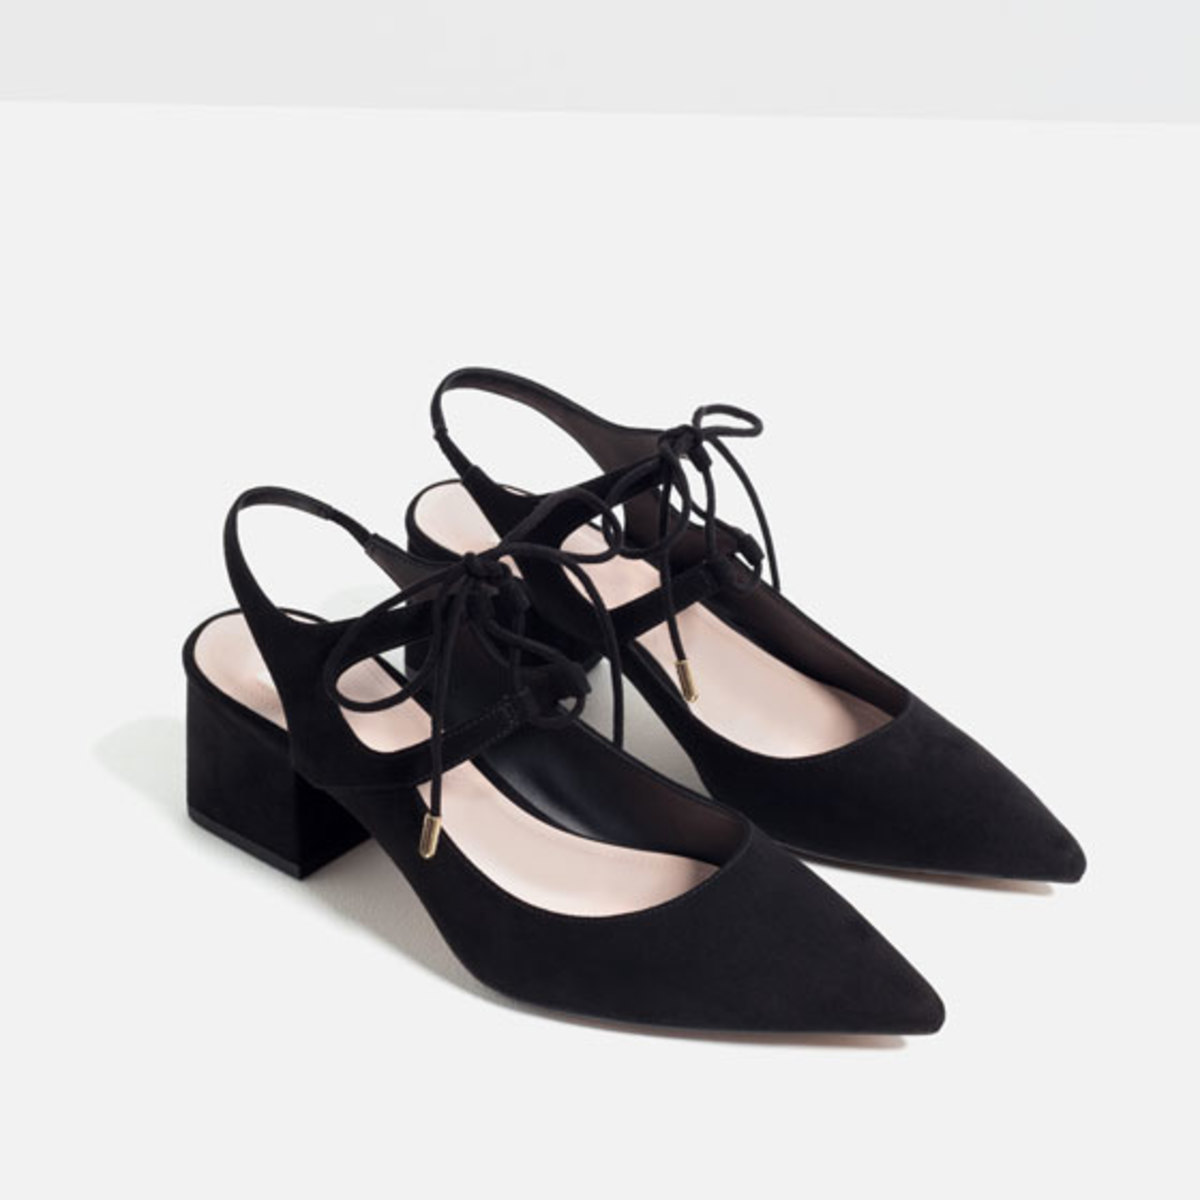 High Heel Slingback Shoes, $49.90, available at Zara.